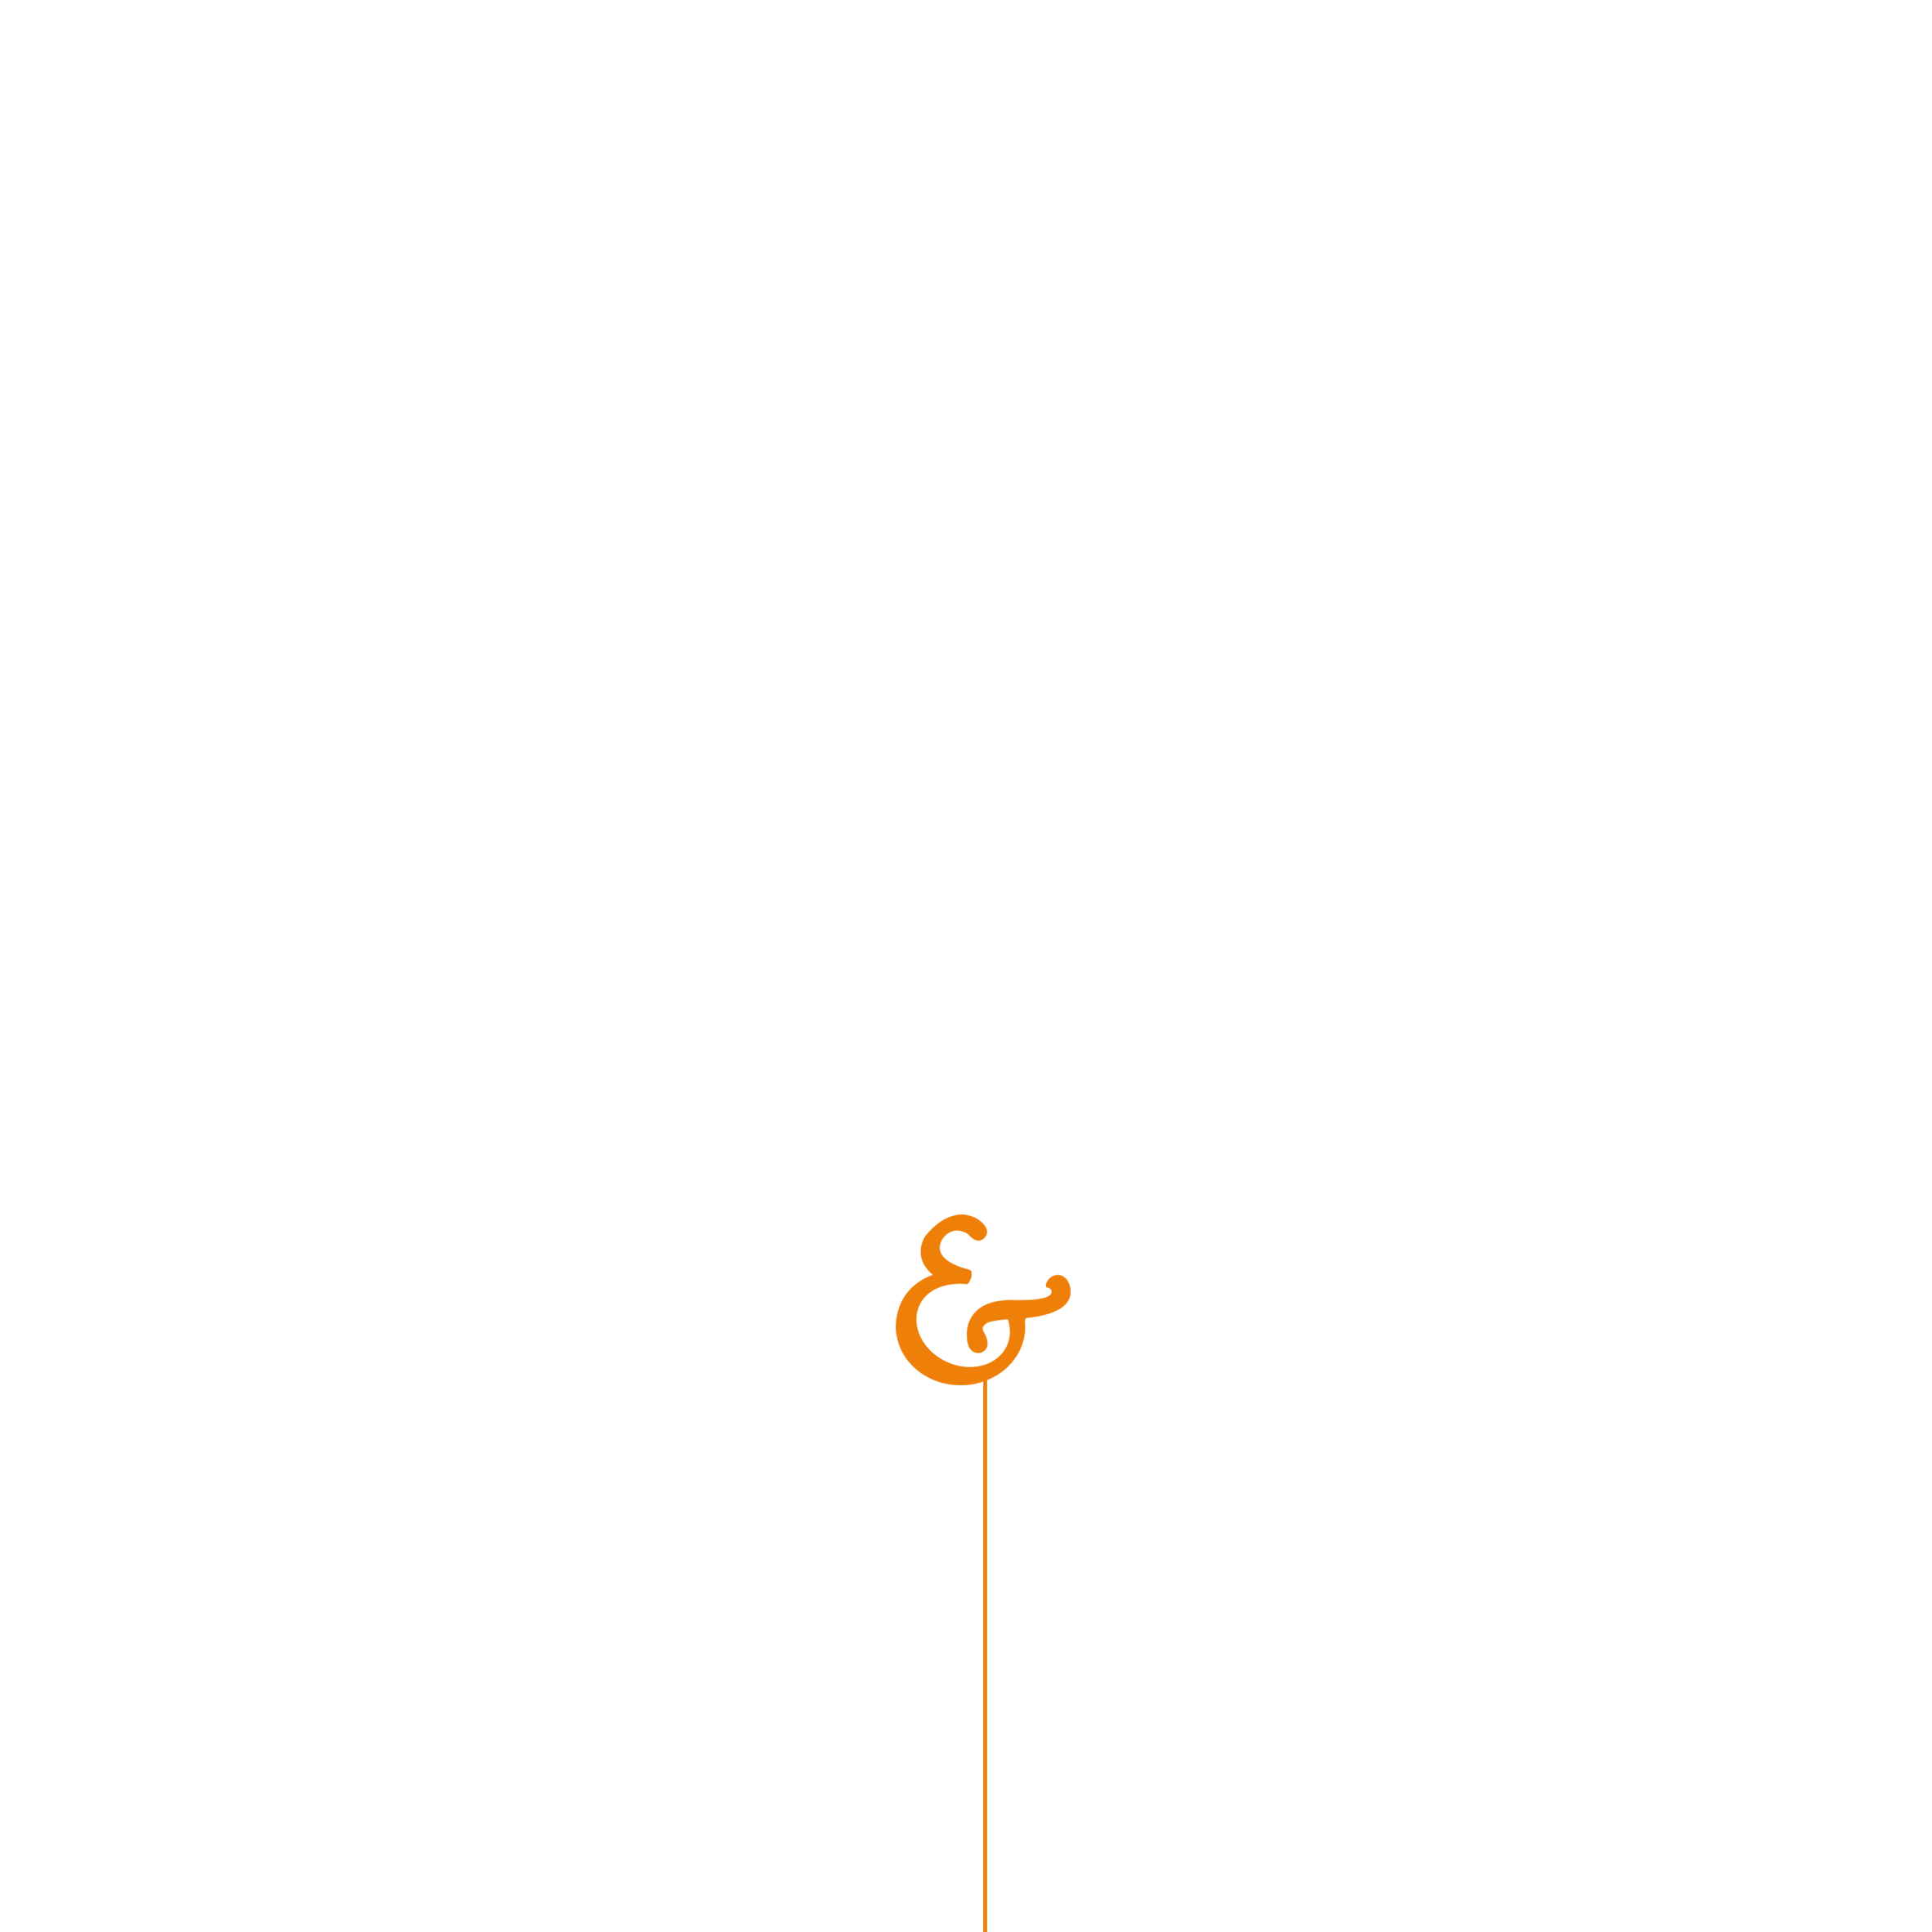 logo food and sweet